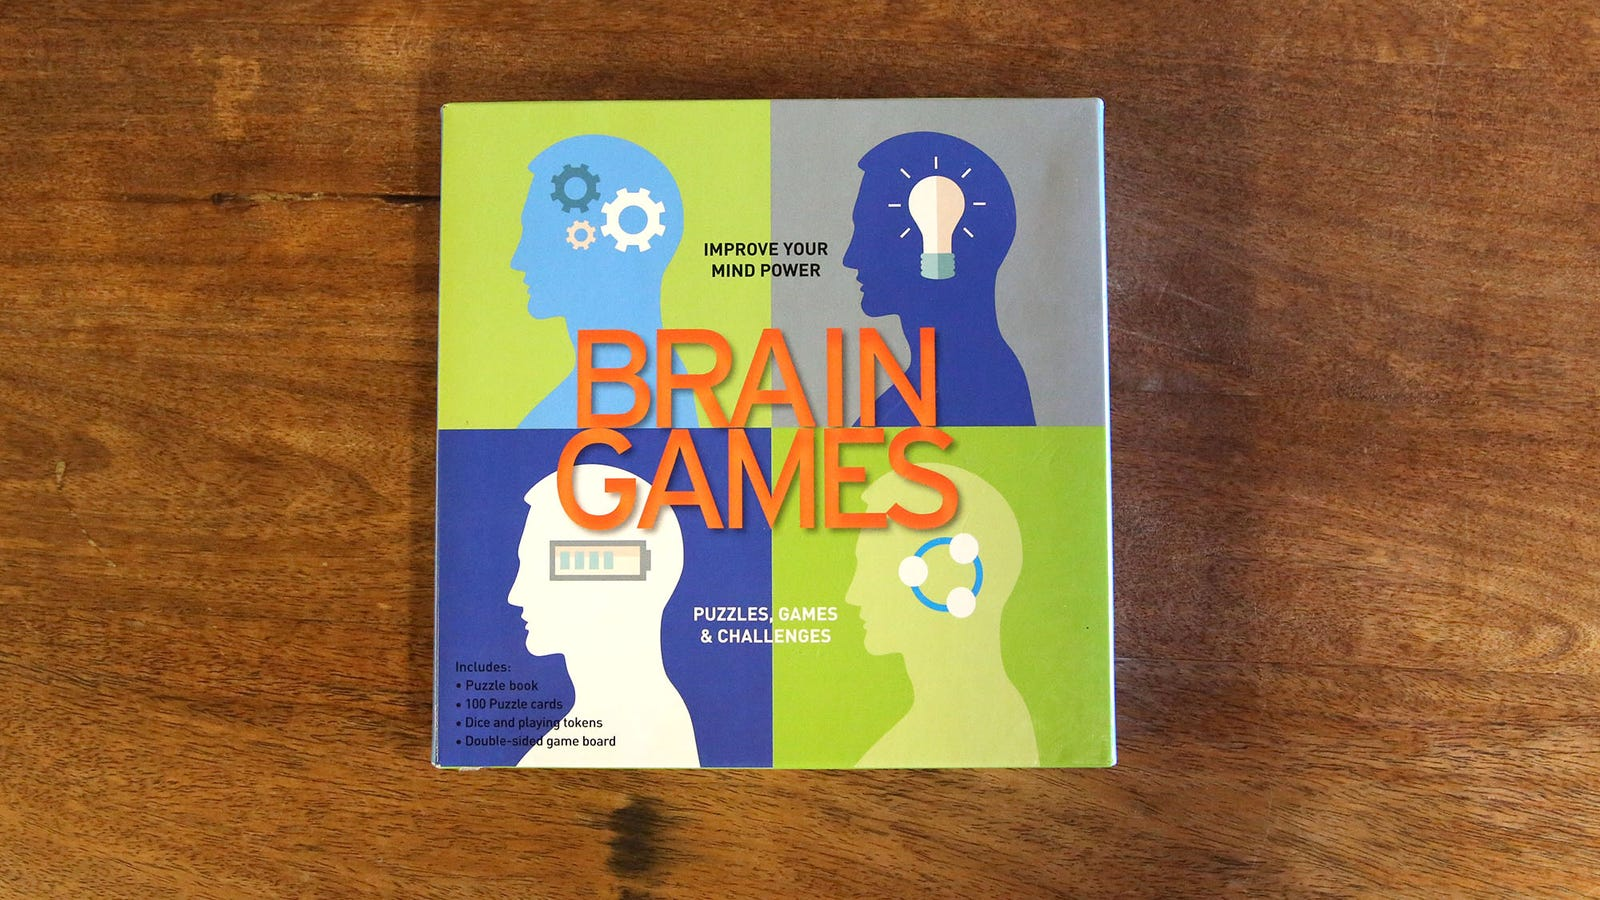 'Brain Games' Recalls Thousands Of Defective Word Puzzles That Gave Users Alzheimer's